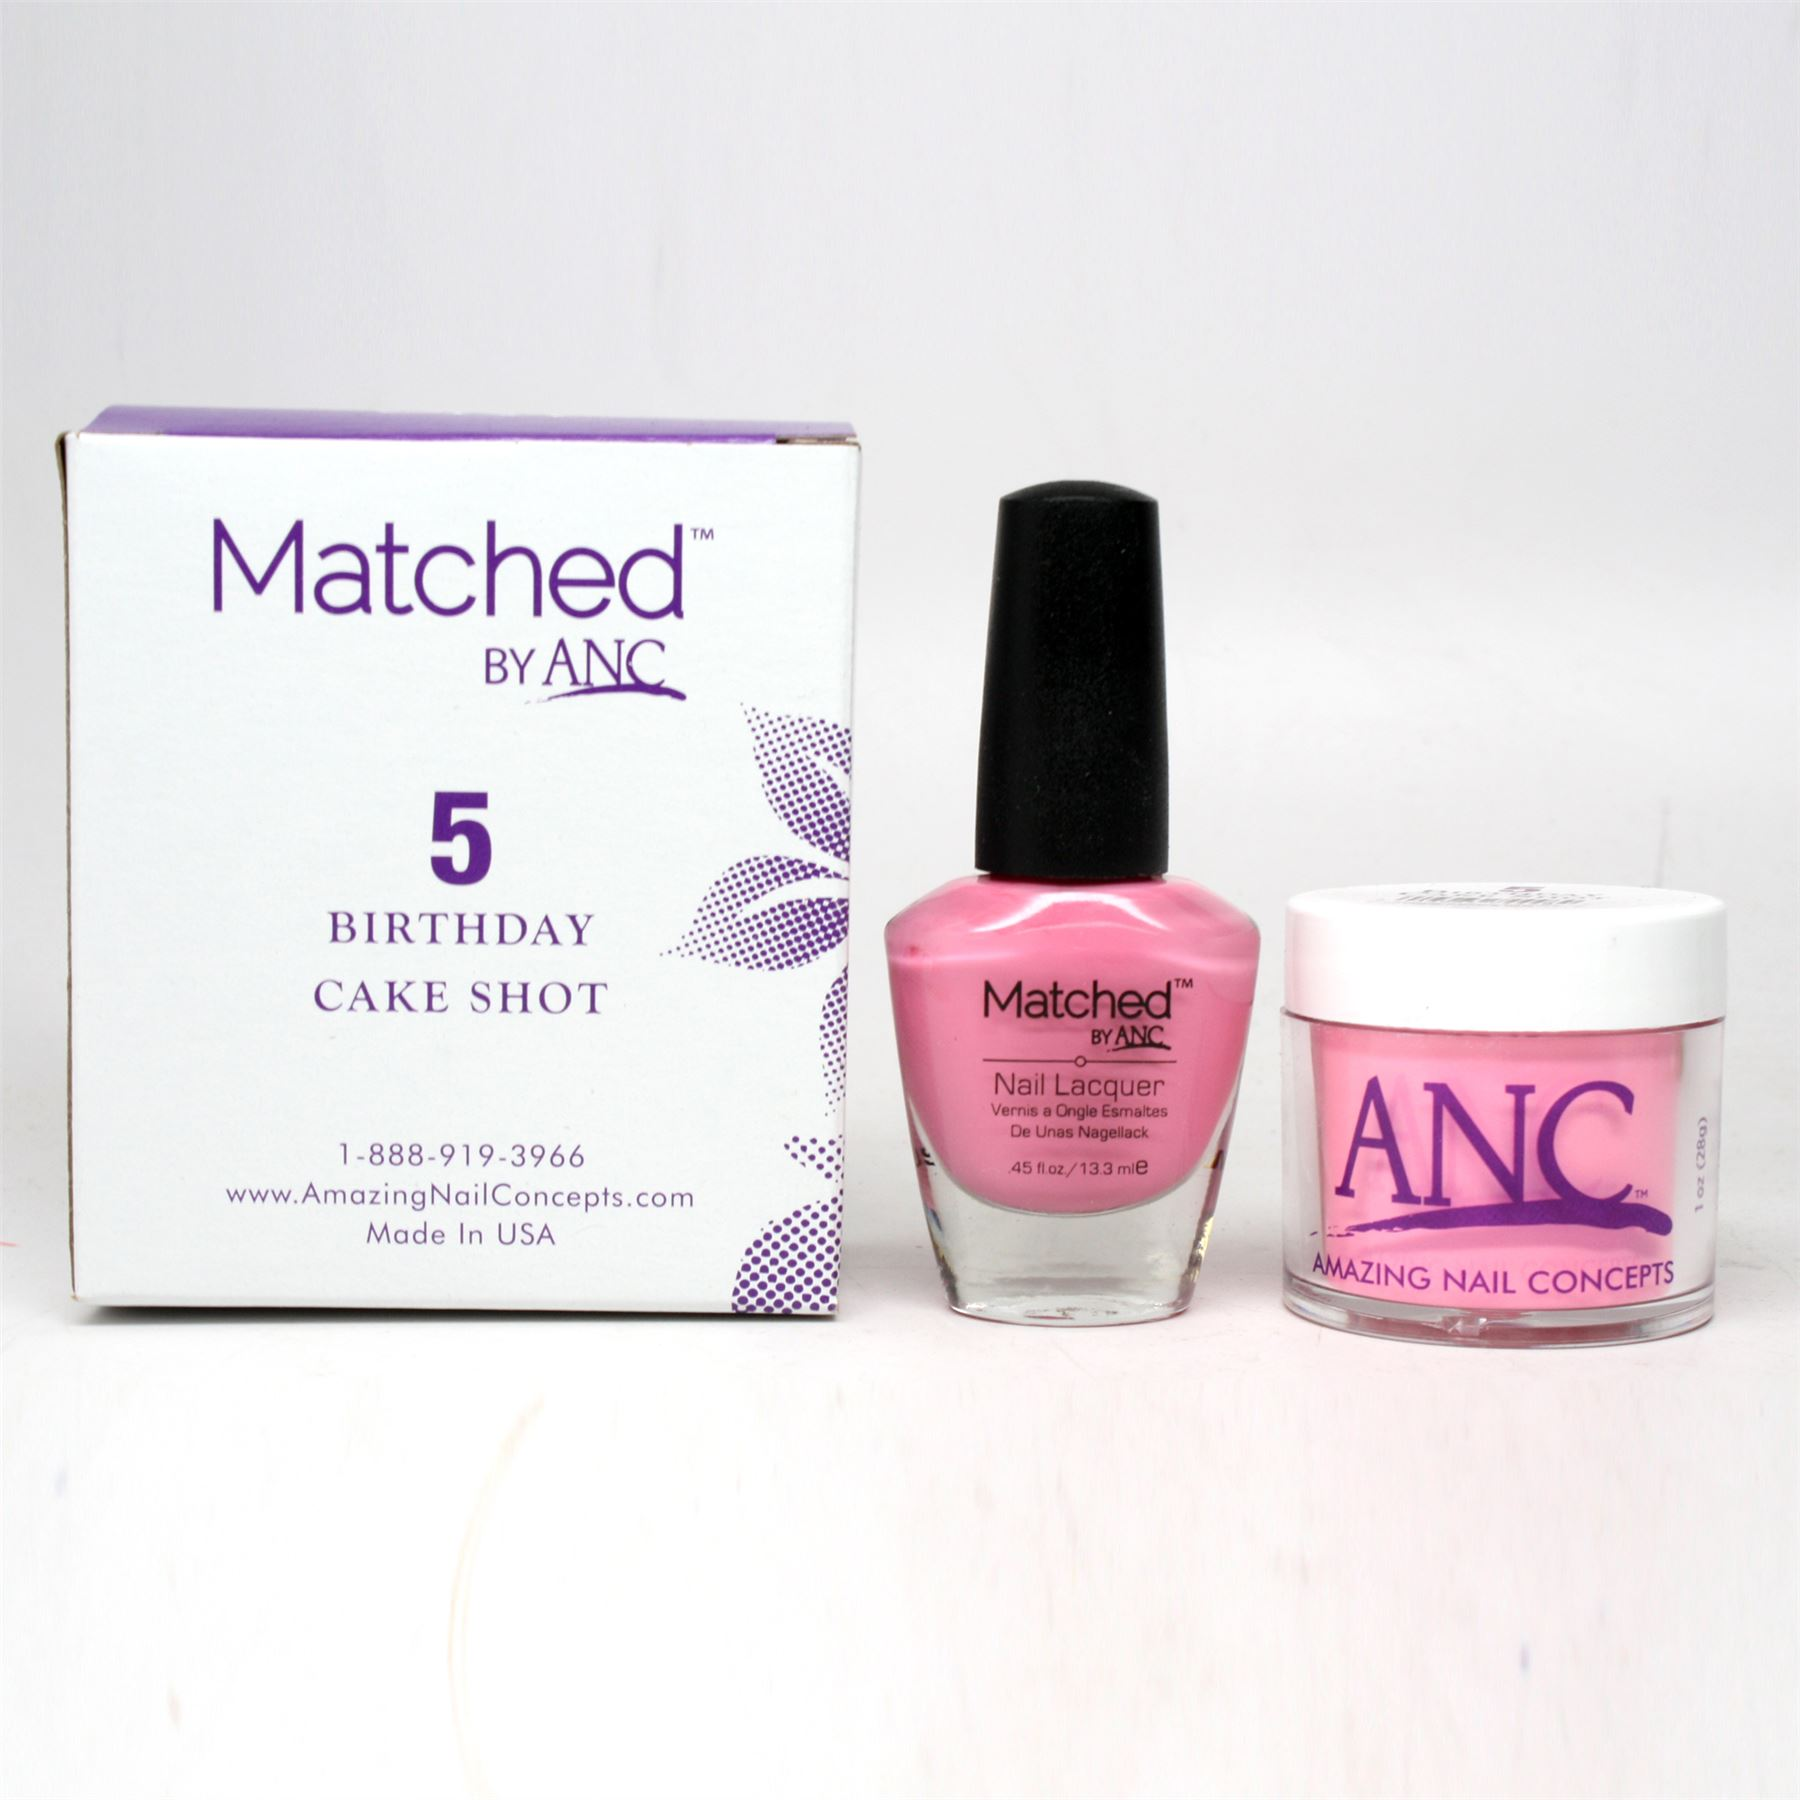 ANC Amazing Nail Concepts Matched Kit # 5 Birthday Cake